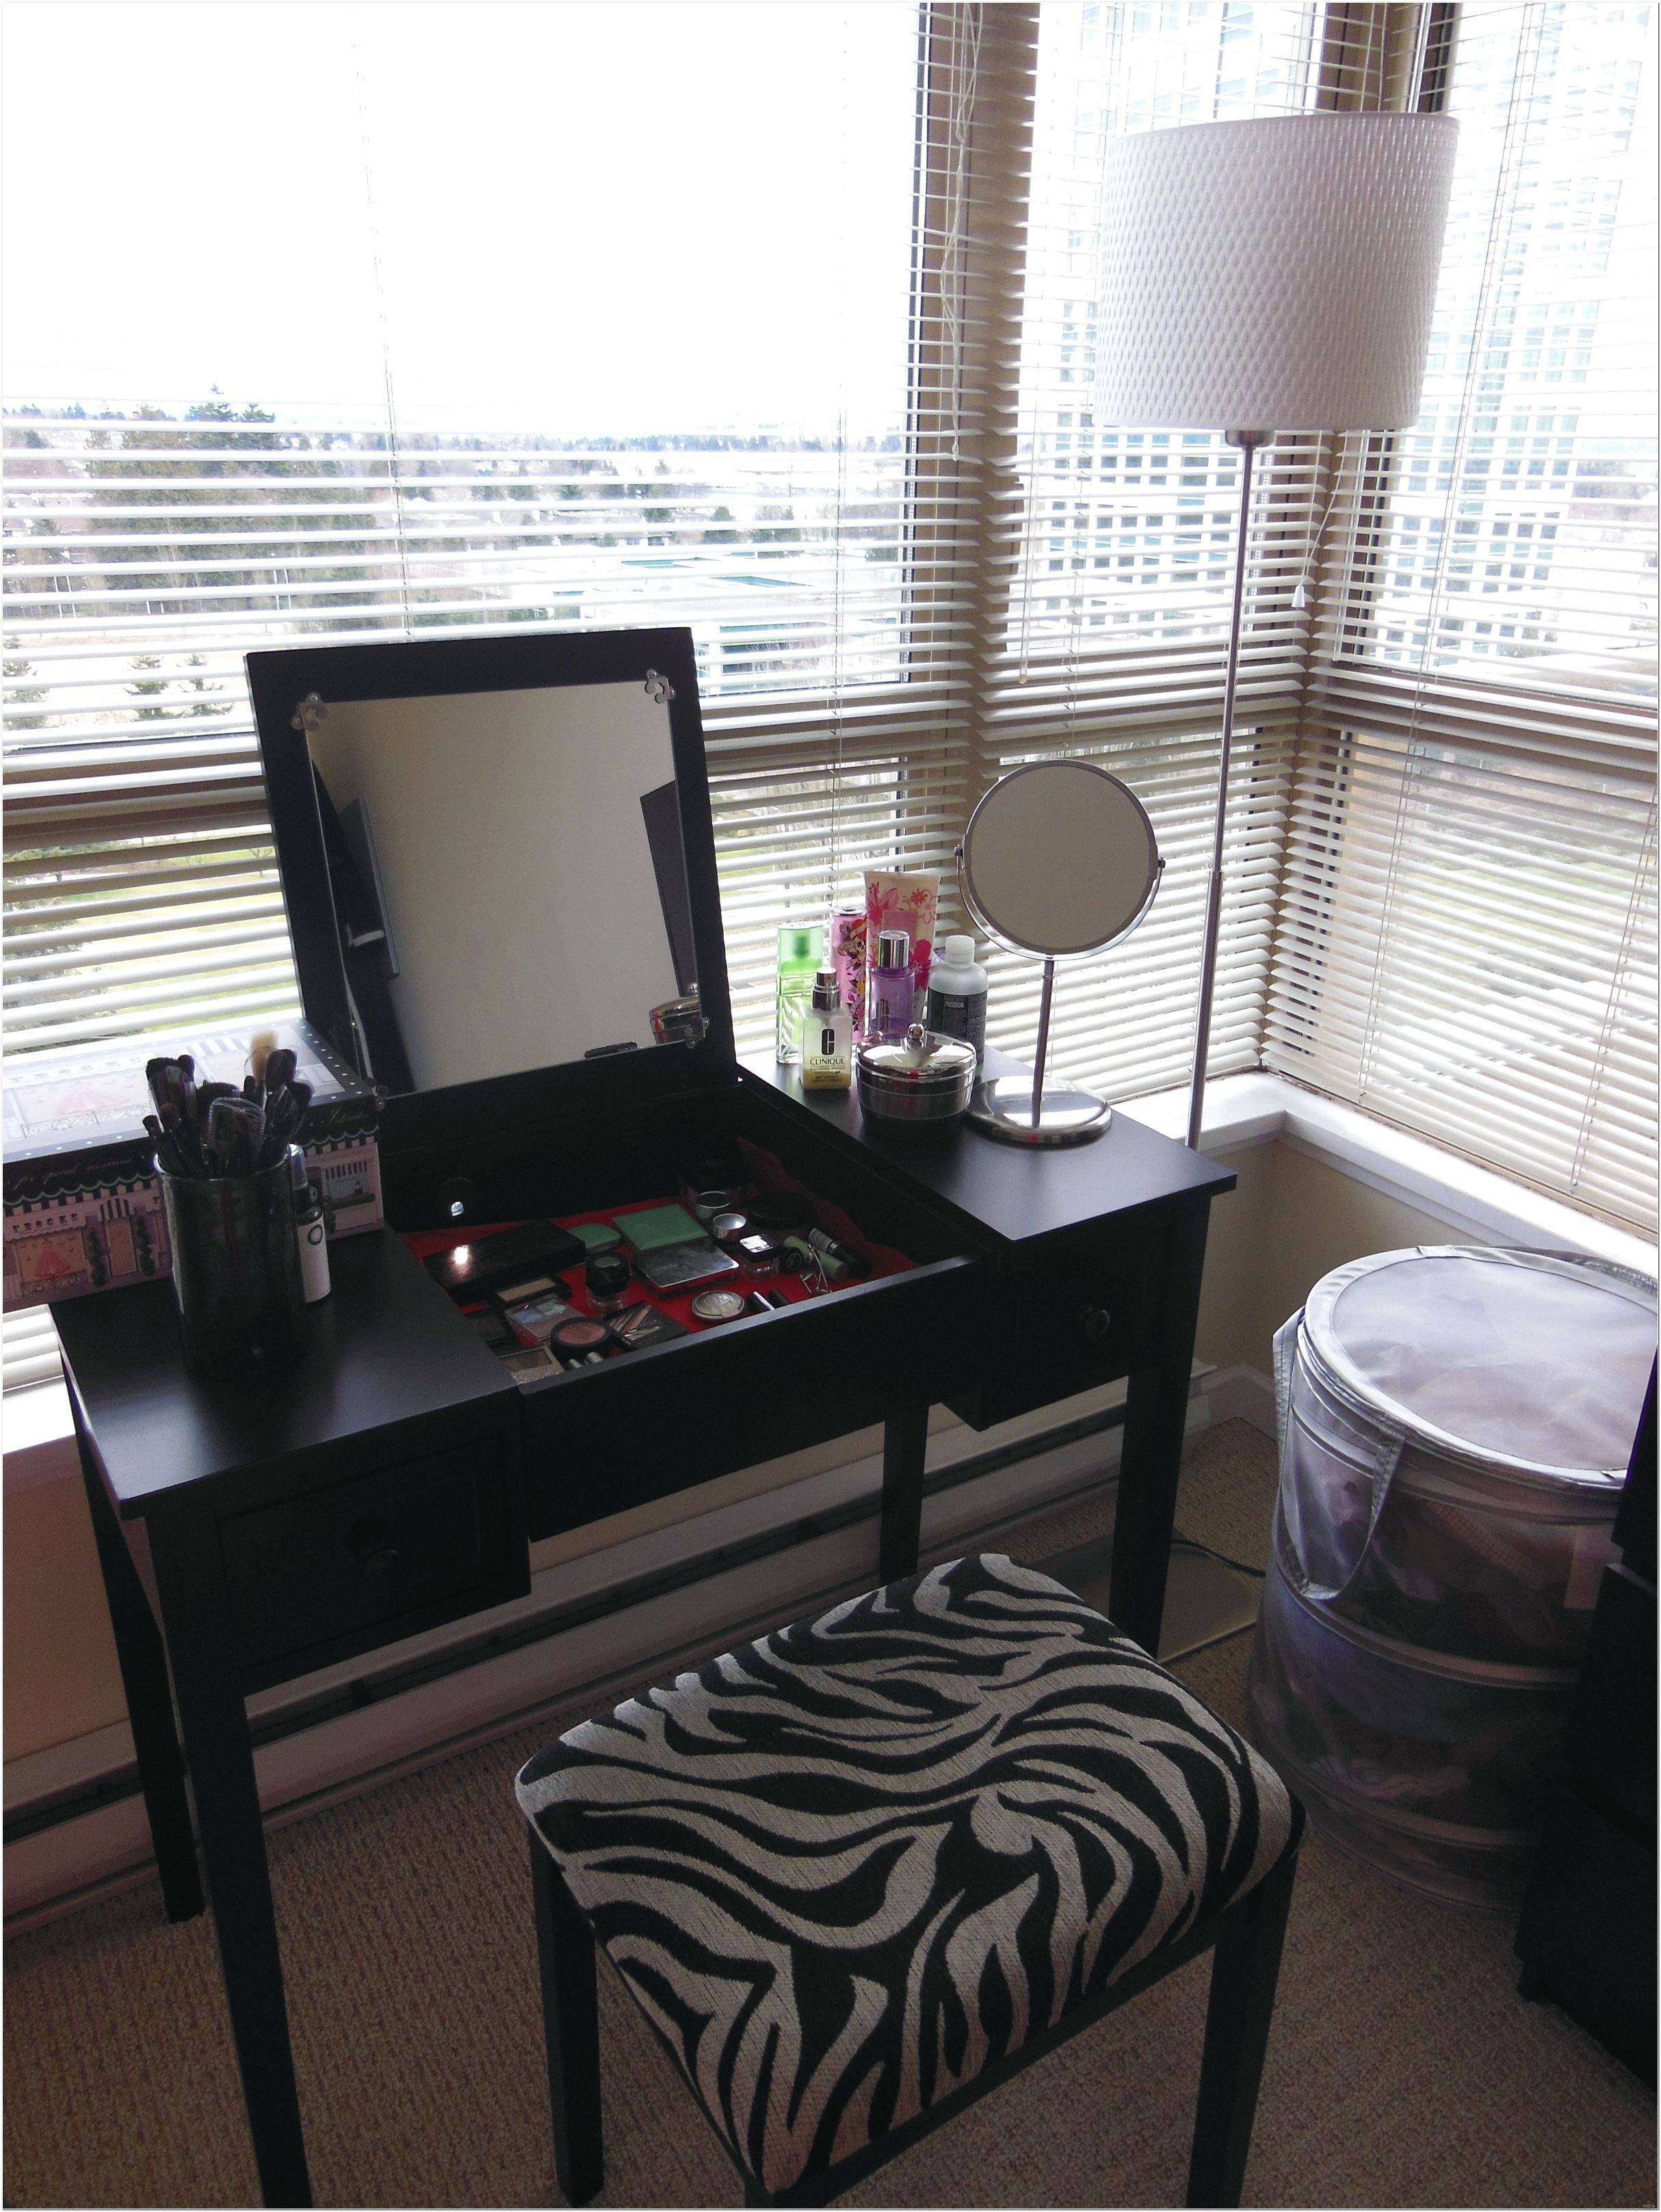 Mirror On Stand For Dressing Table Design Ideas – Interior Design In Mirrors On Stand For Dressing Table (View 15 of 15)